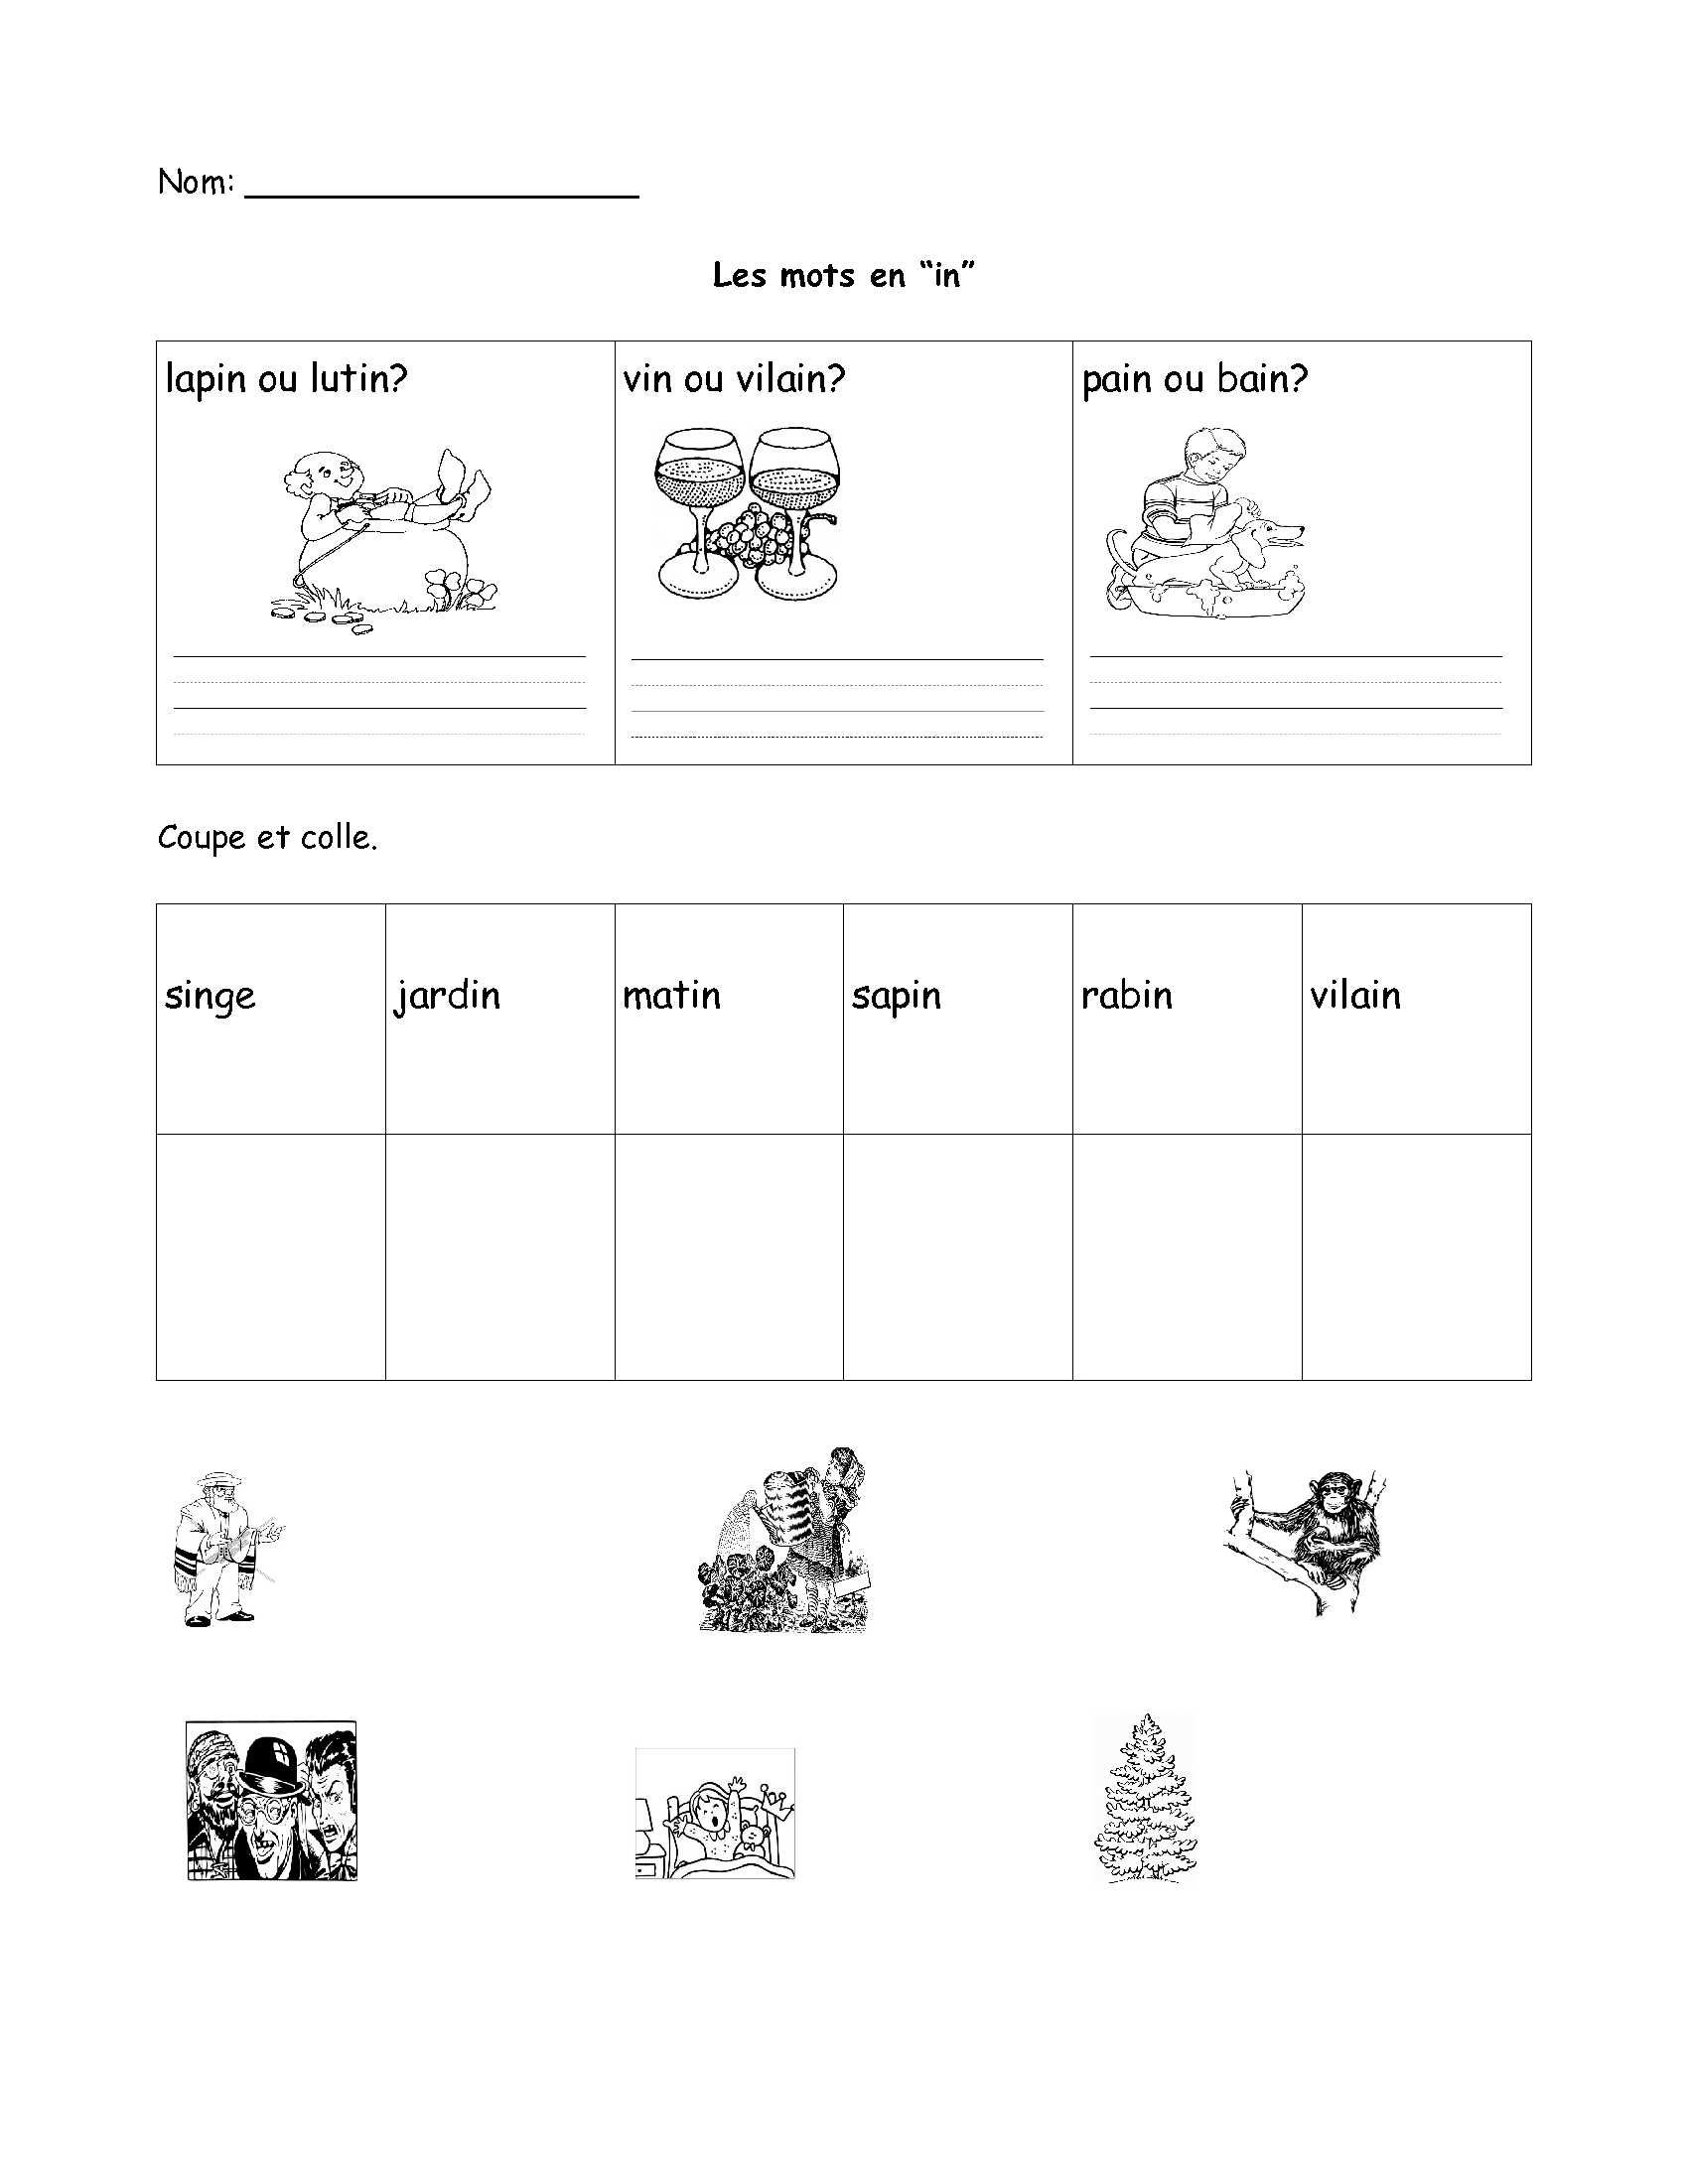 Free French Worksheet- Grade 1, Grade 2, Grade 3. Fsl, Core French | Free Printable French Worksheets For Grade 1